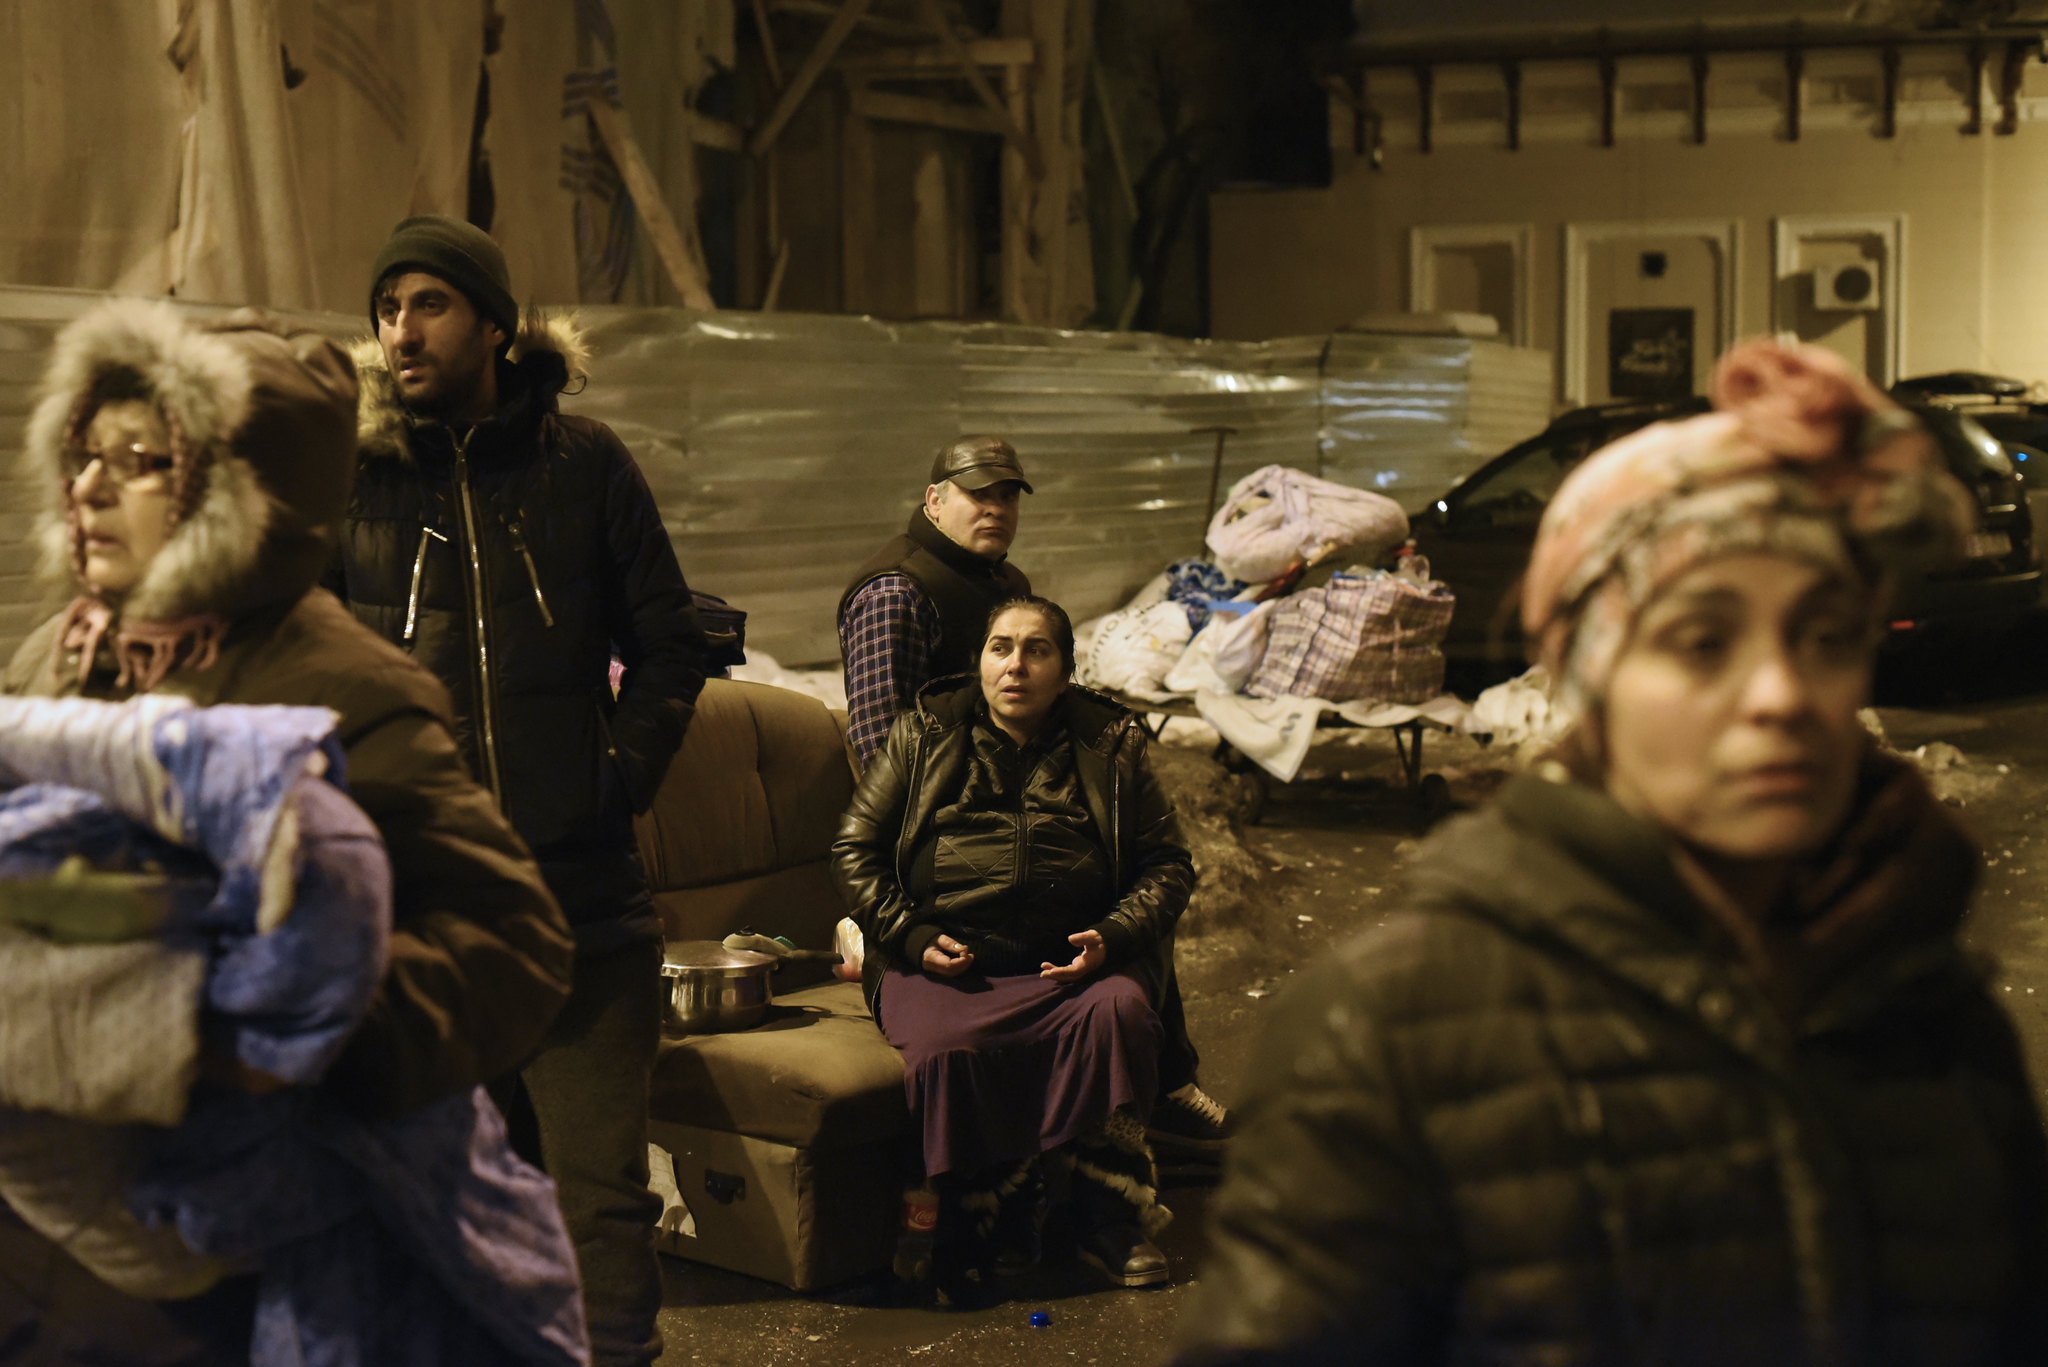 Romania: Illegal eviction, strada Sfintilor 13, 3 Feb